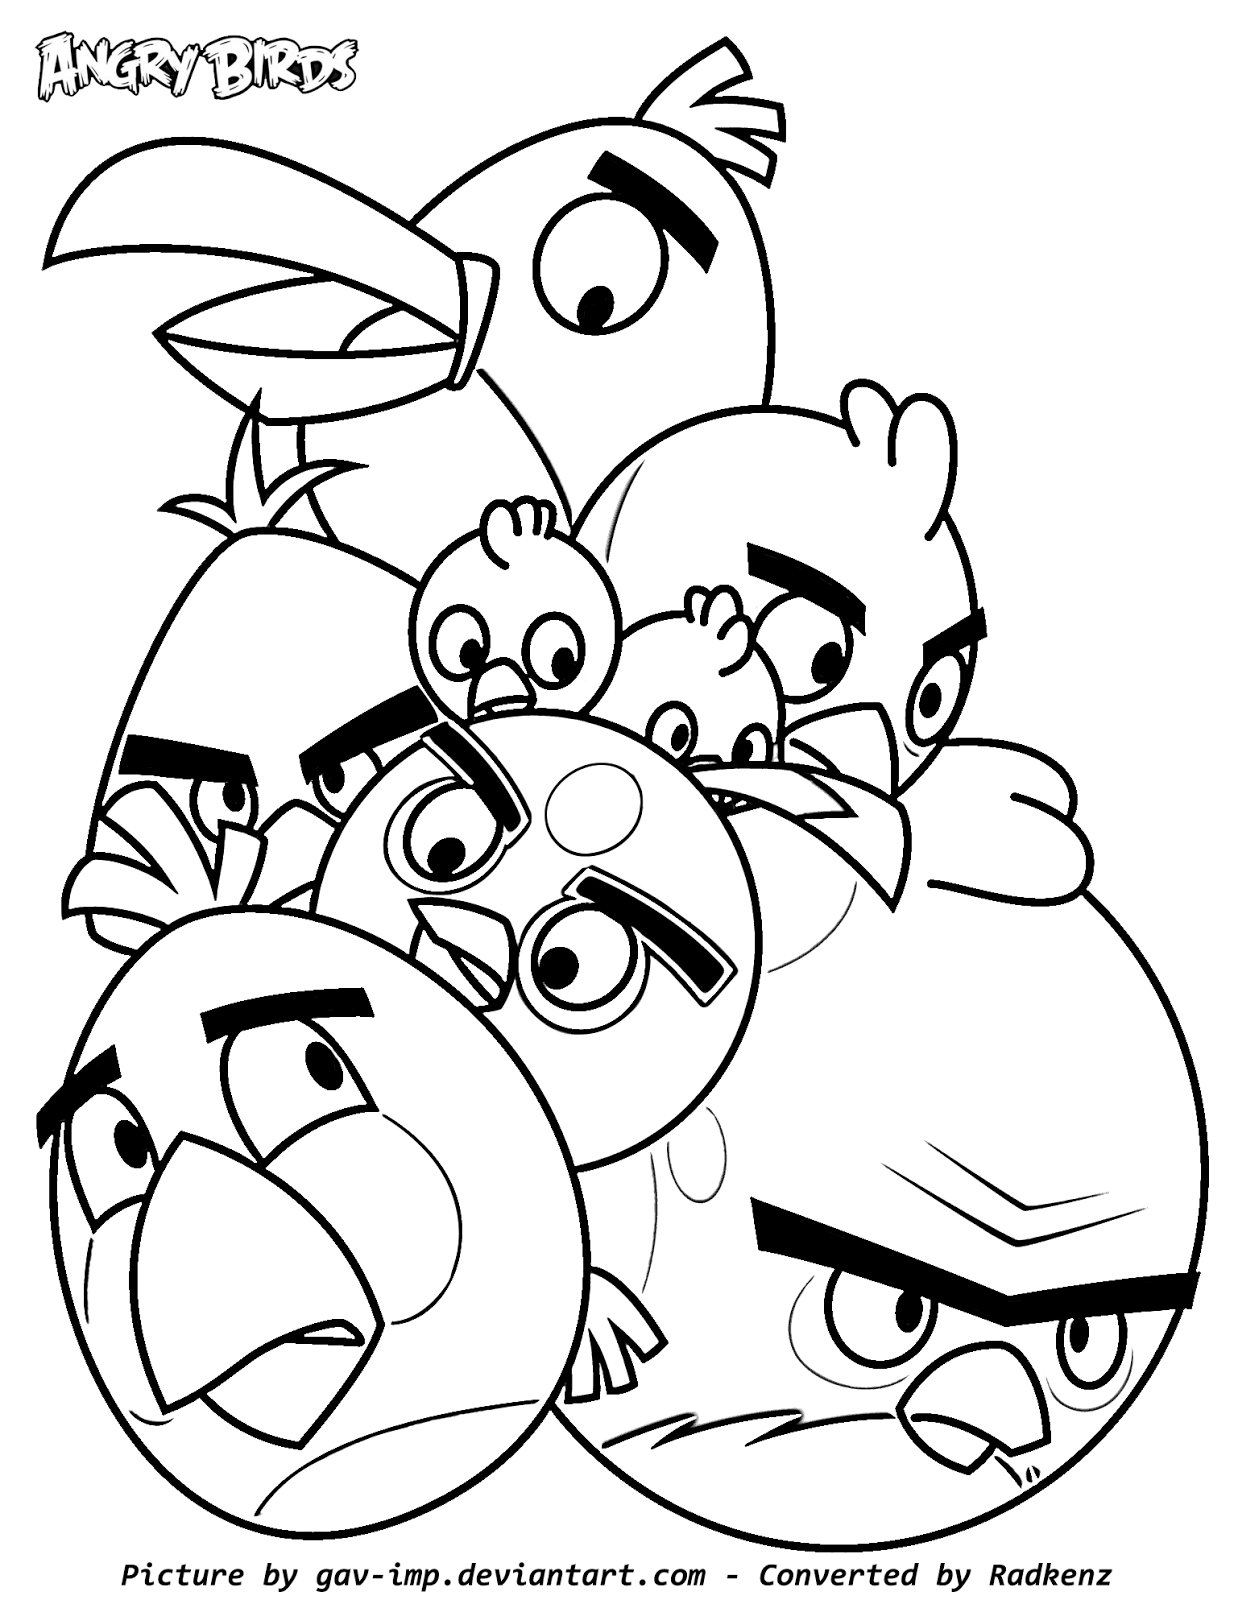 Radkenz Artworks Gallery: Angry Birds